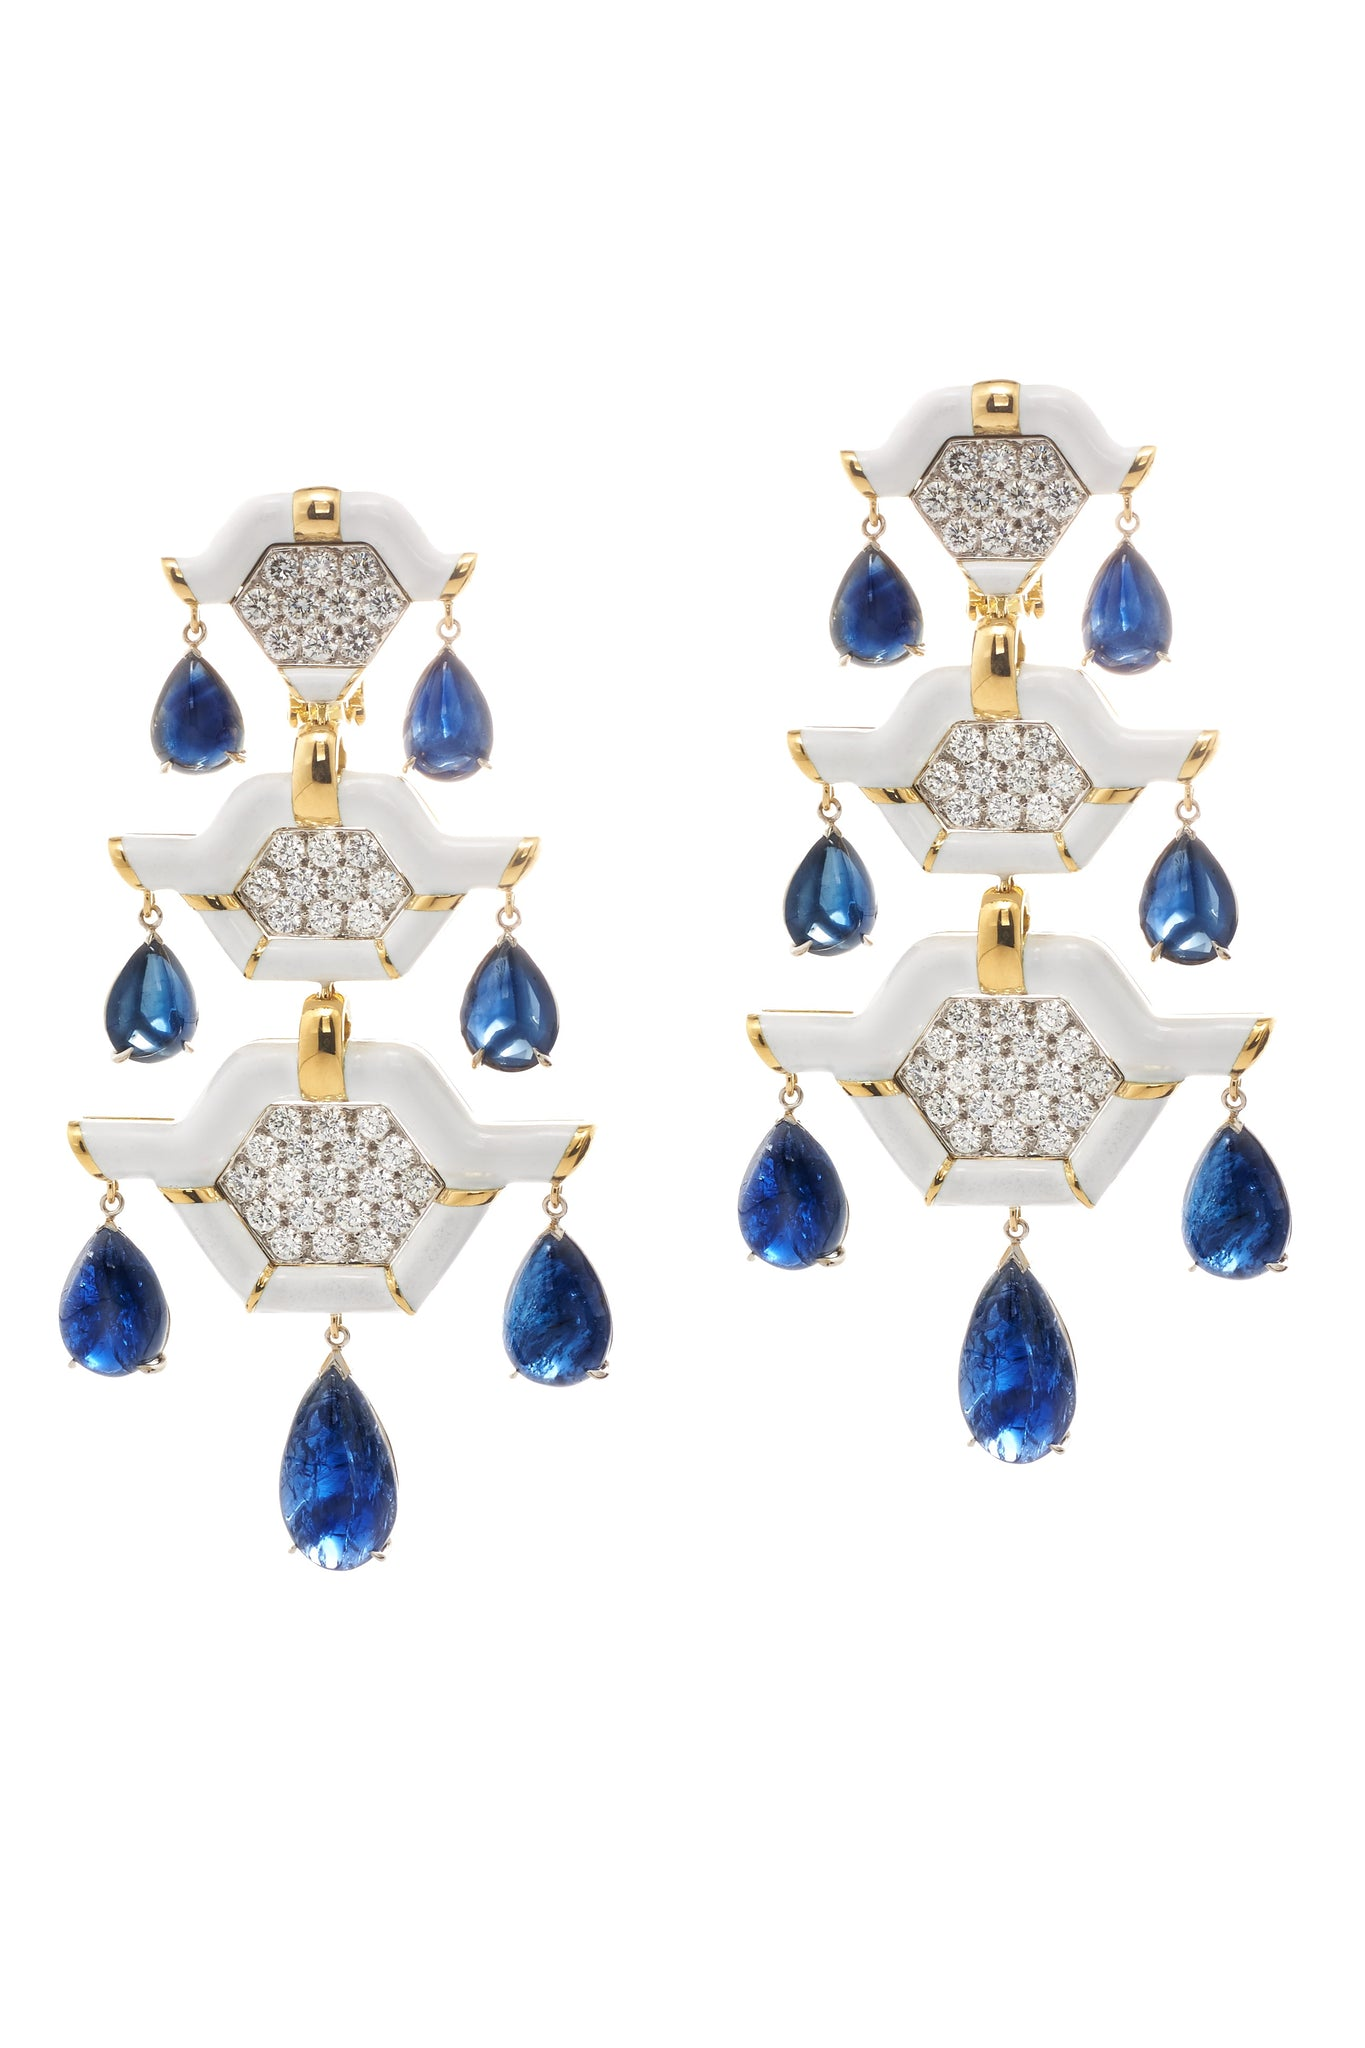 David Webb - Manhattan Minimalism - Triple Pagoda Earrings - Sapphire